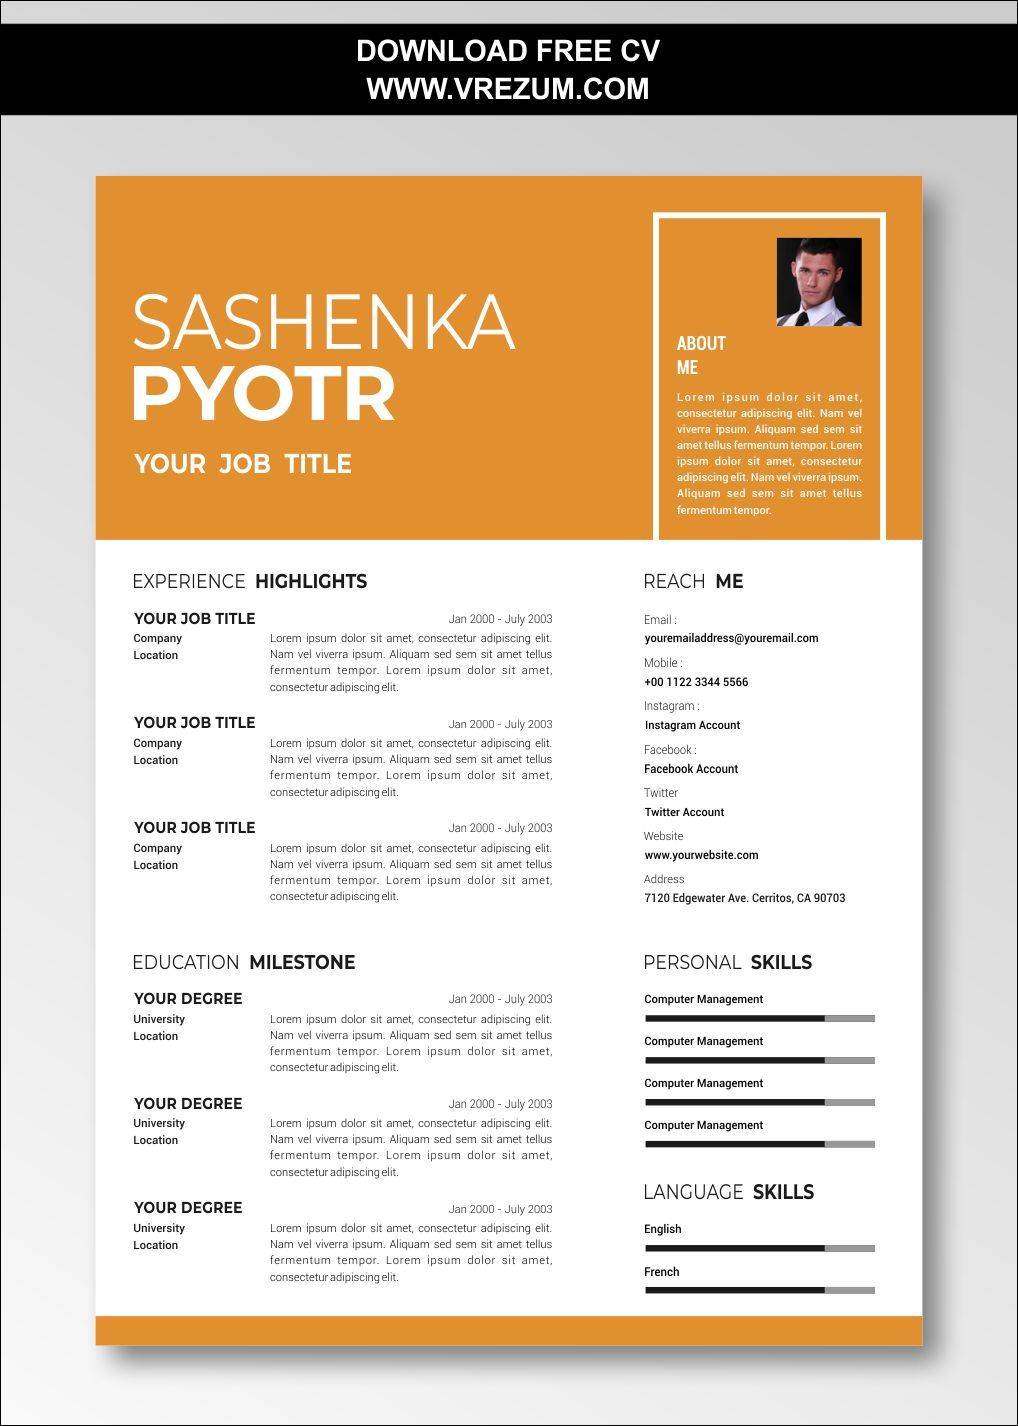 (EDITABLE) FREE CV Templates For Graduate School